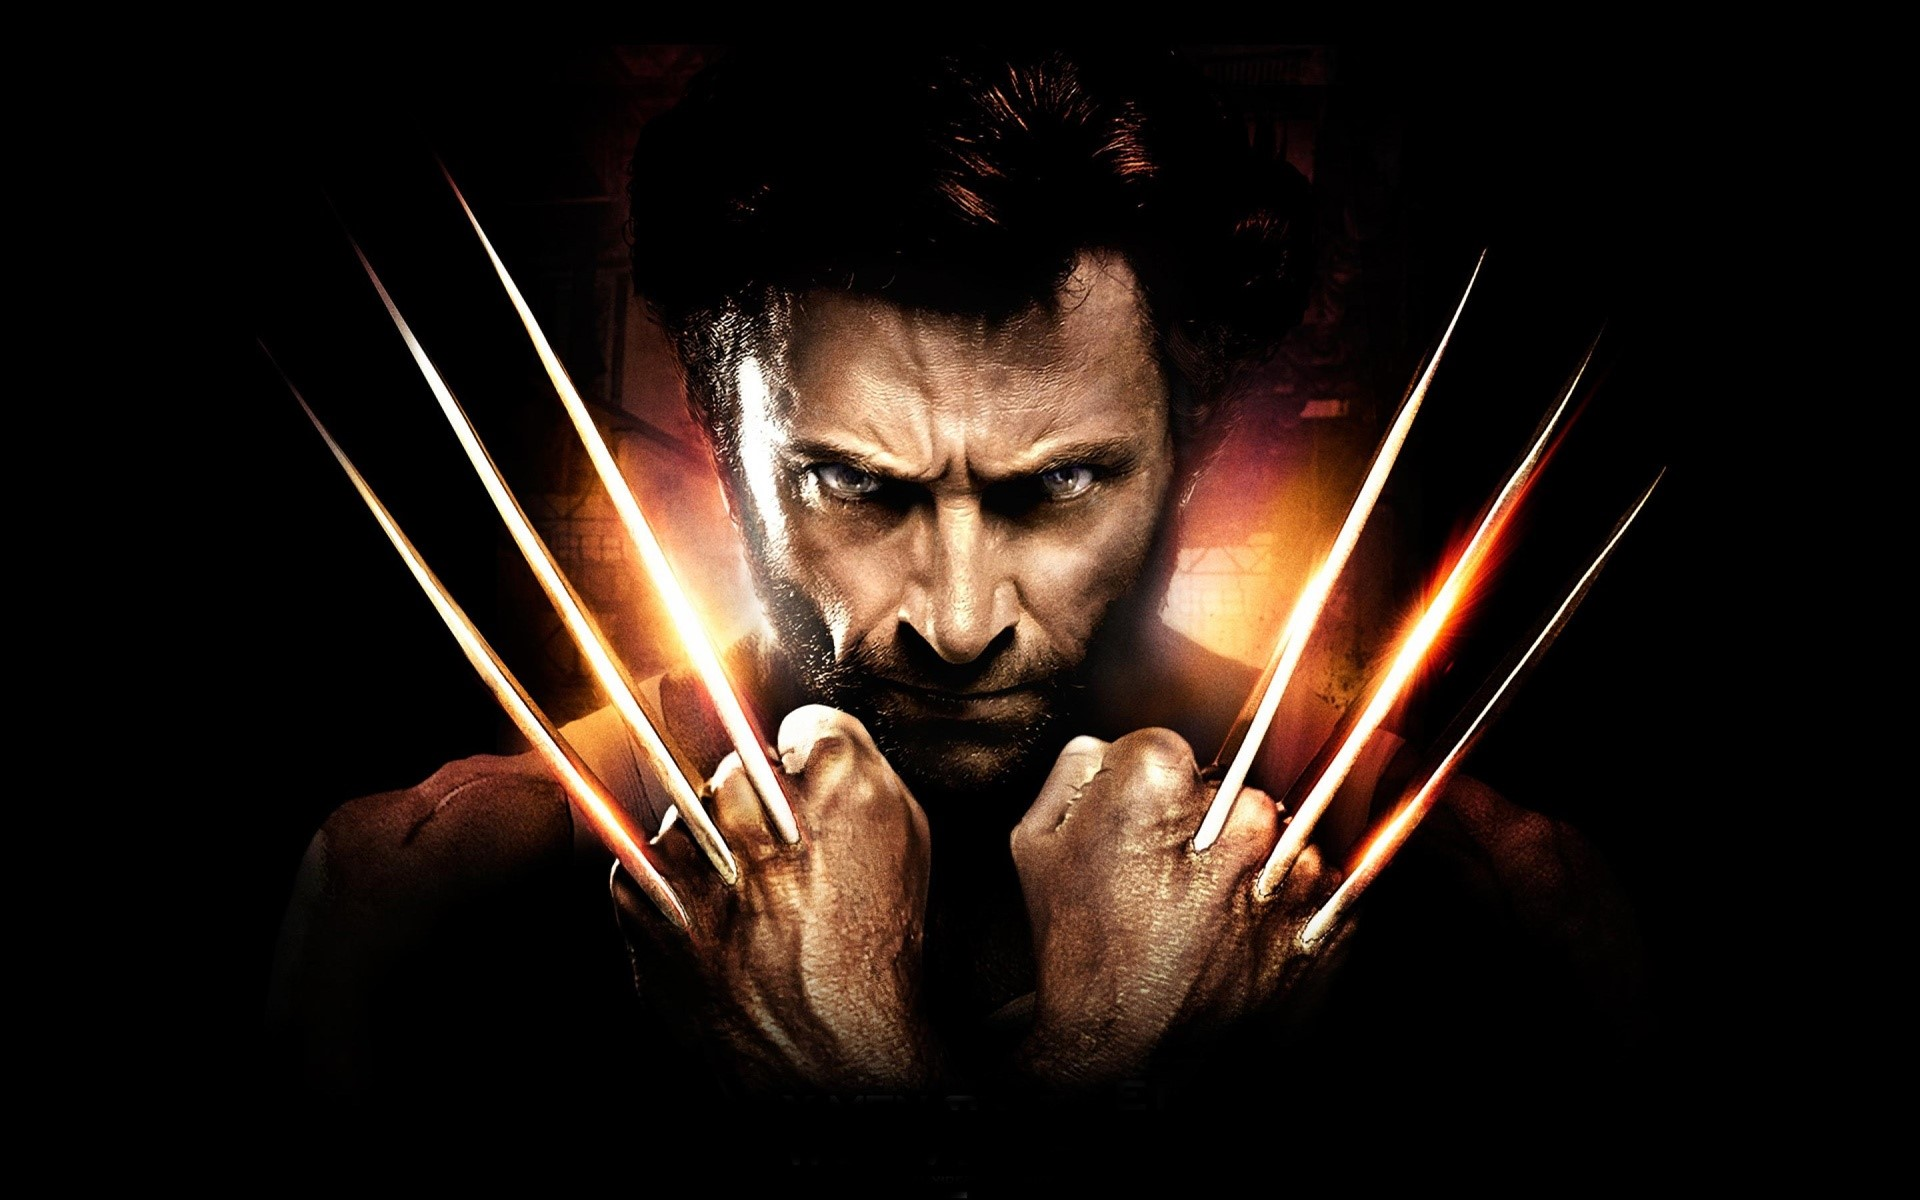 Wallpaper Hugh Jackman as Wolverine